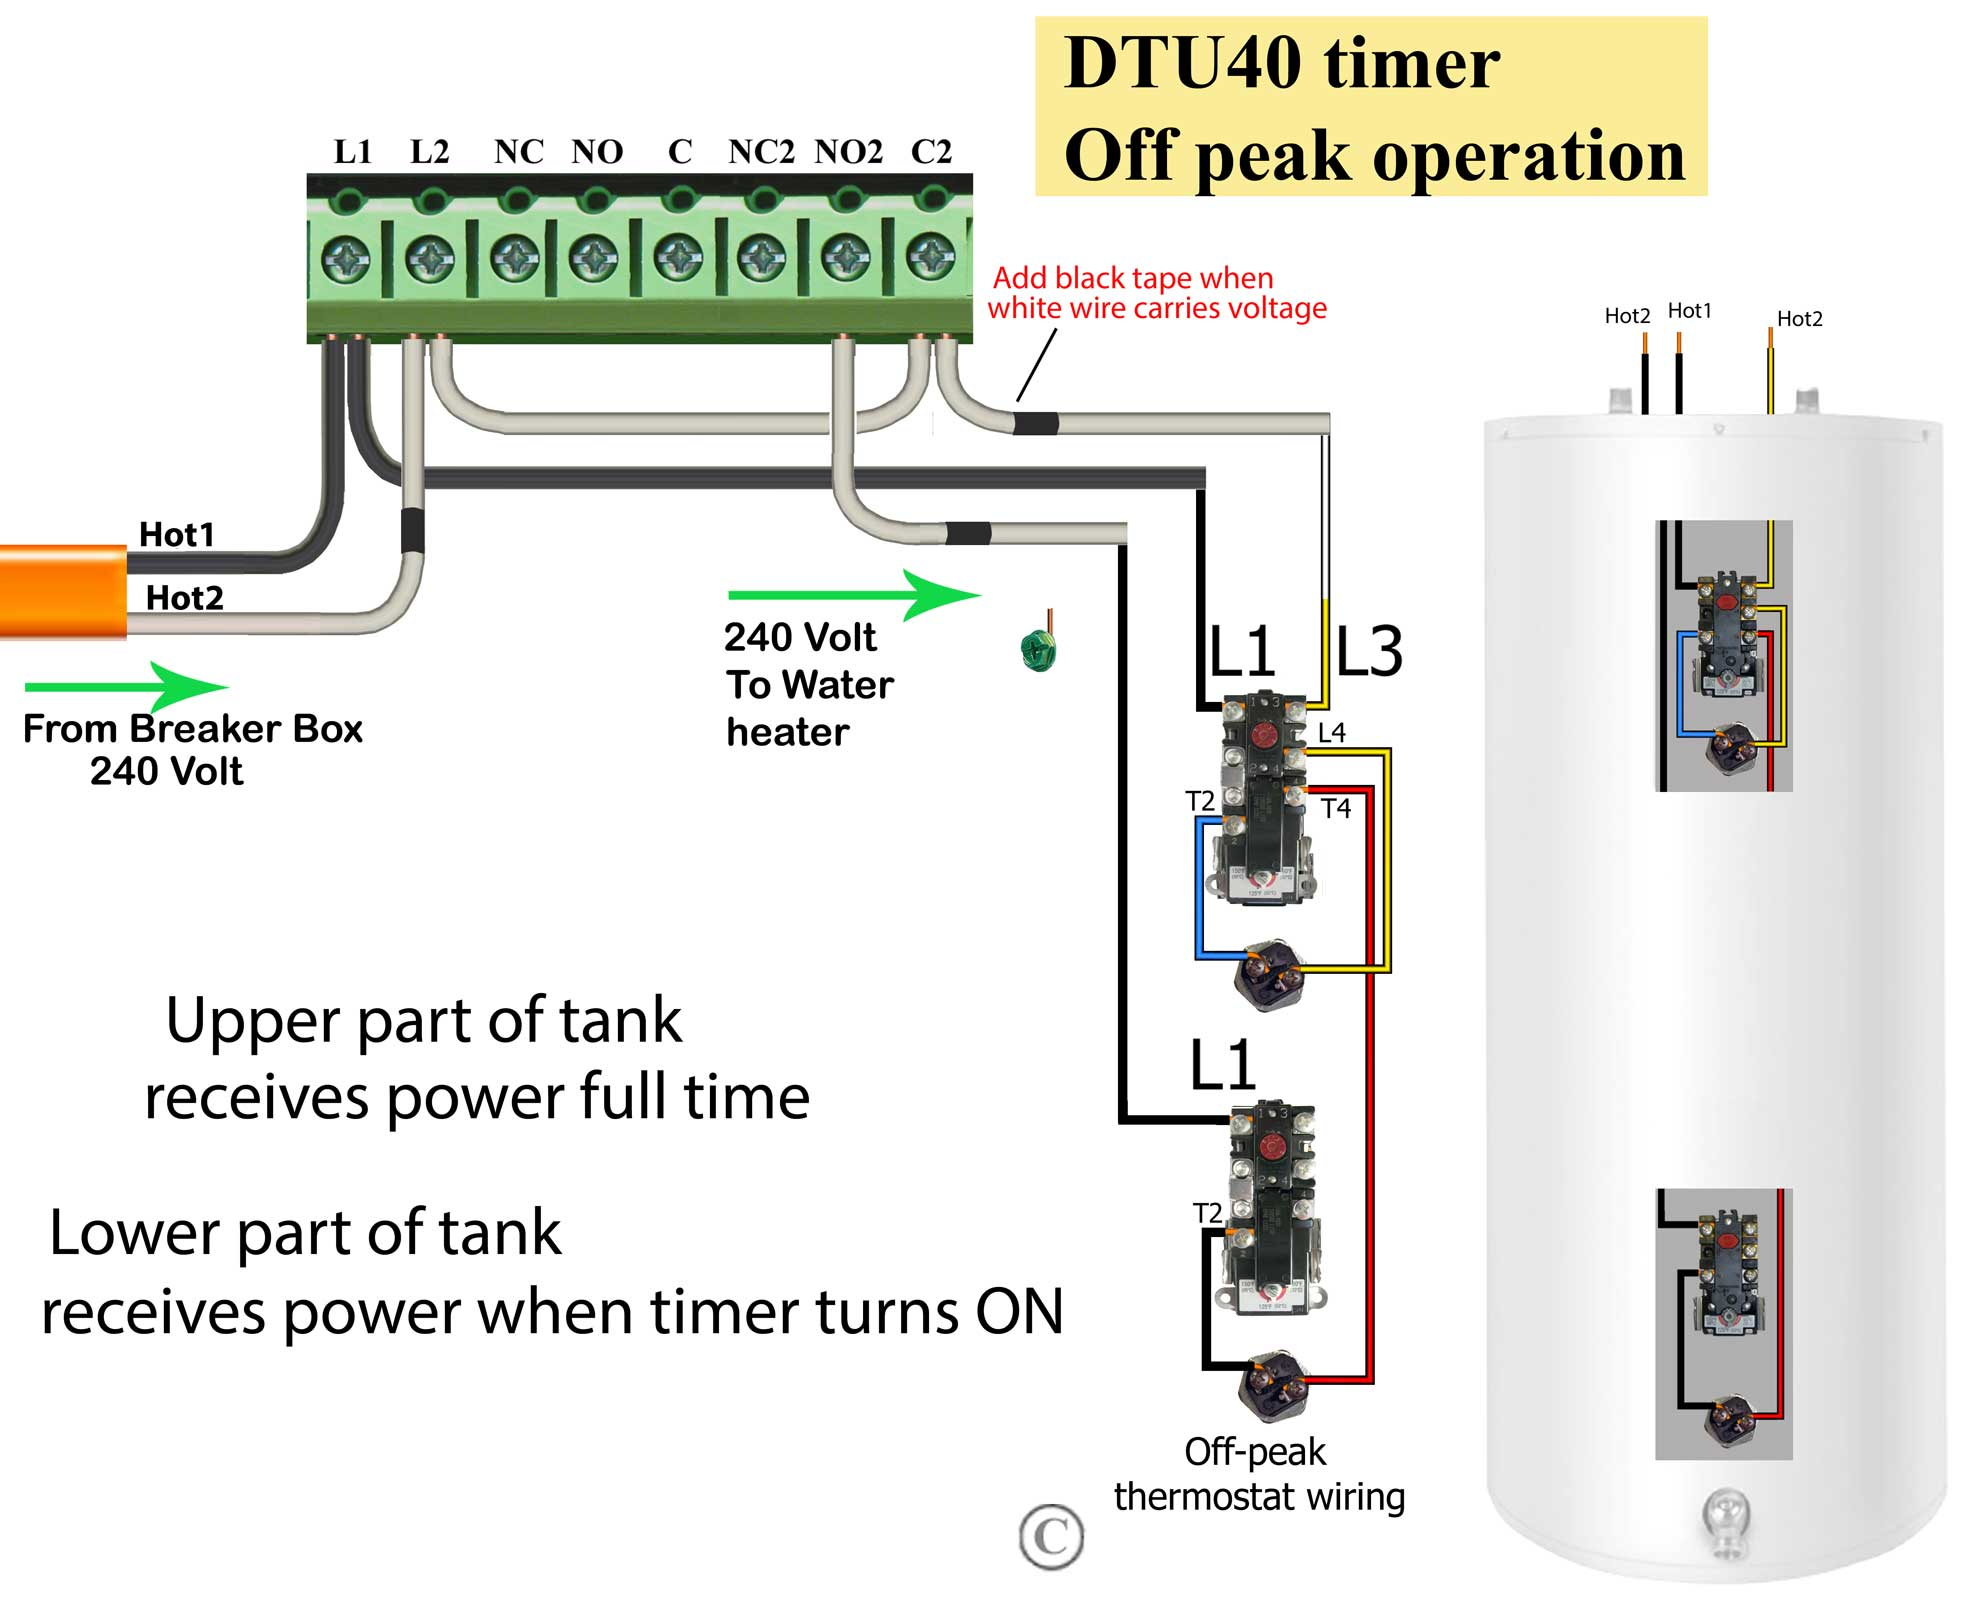 How To Wire Water Heater Thermostats Wiring Heat Tape In Series Free Download Diagrams Pictures Larger Image Tork Dtu Timer Off Peak